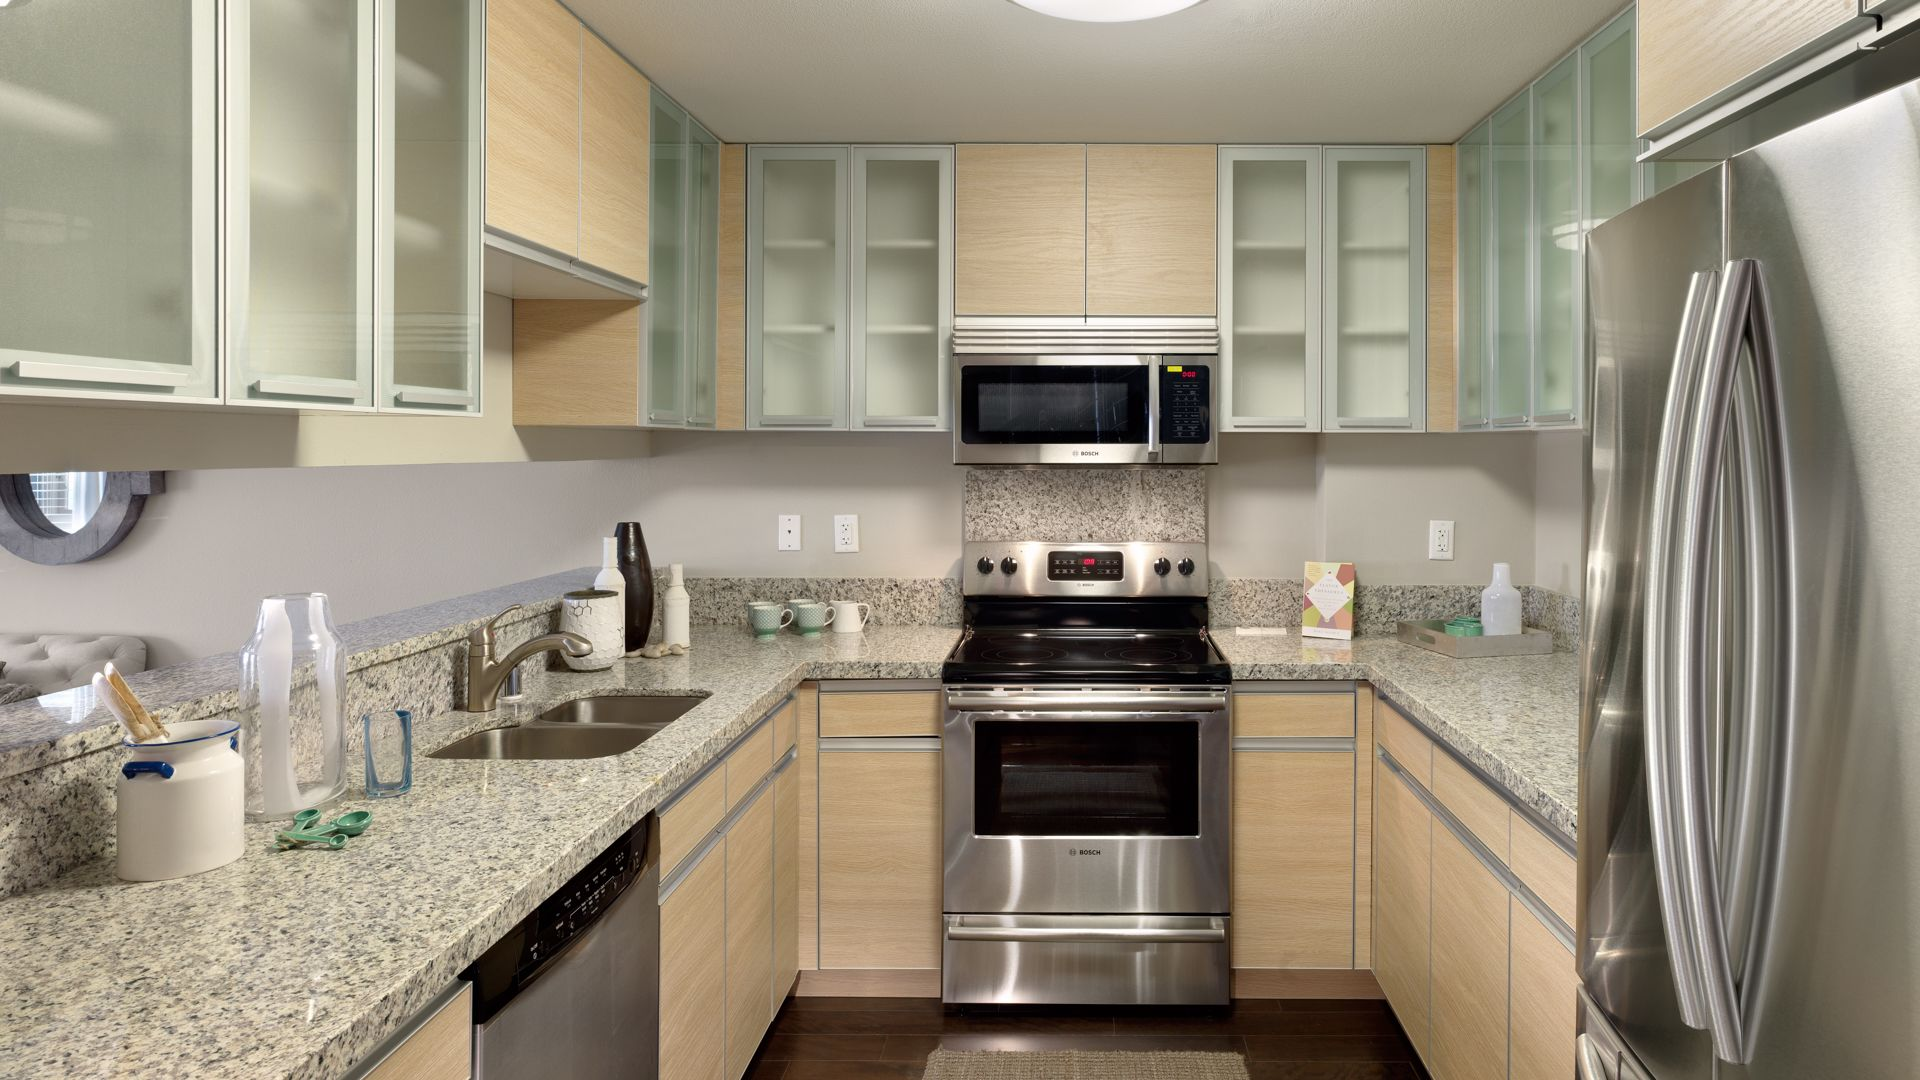 88 Hillside Apartments - Kitchen